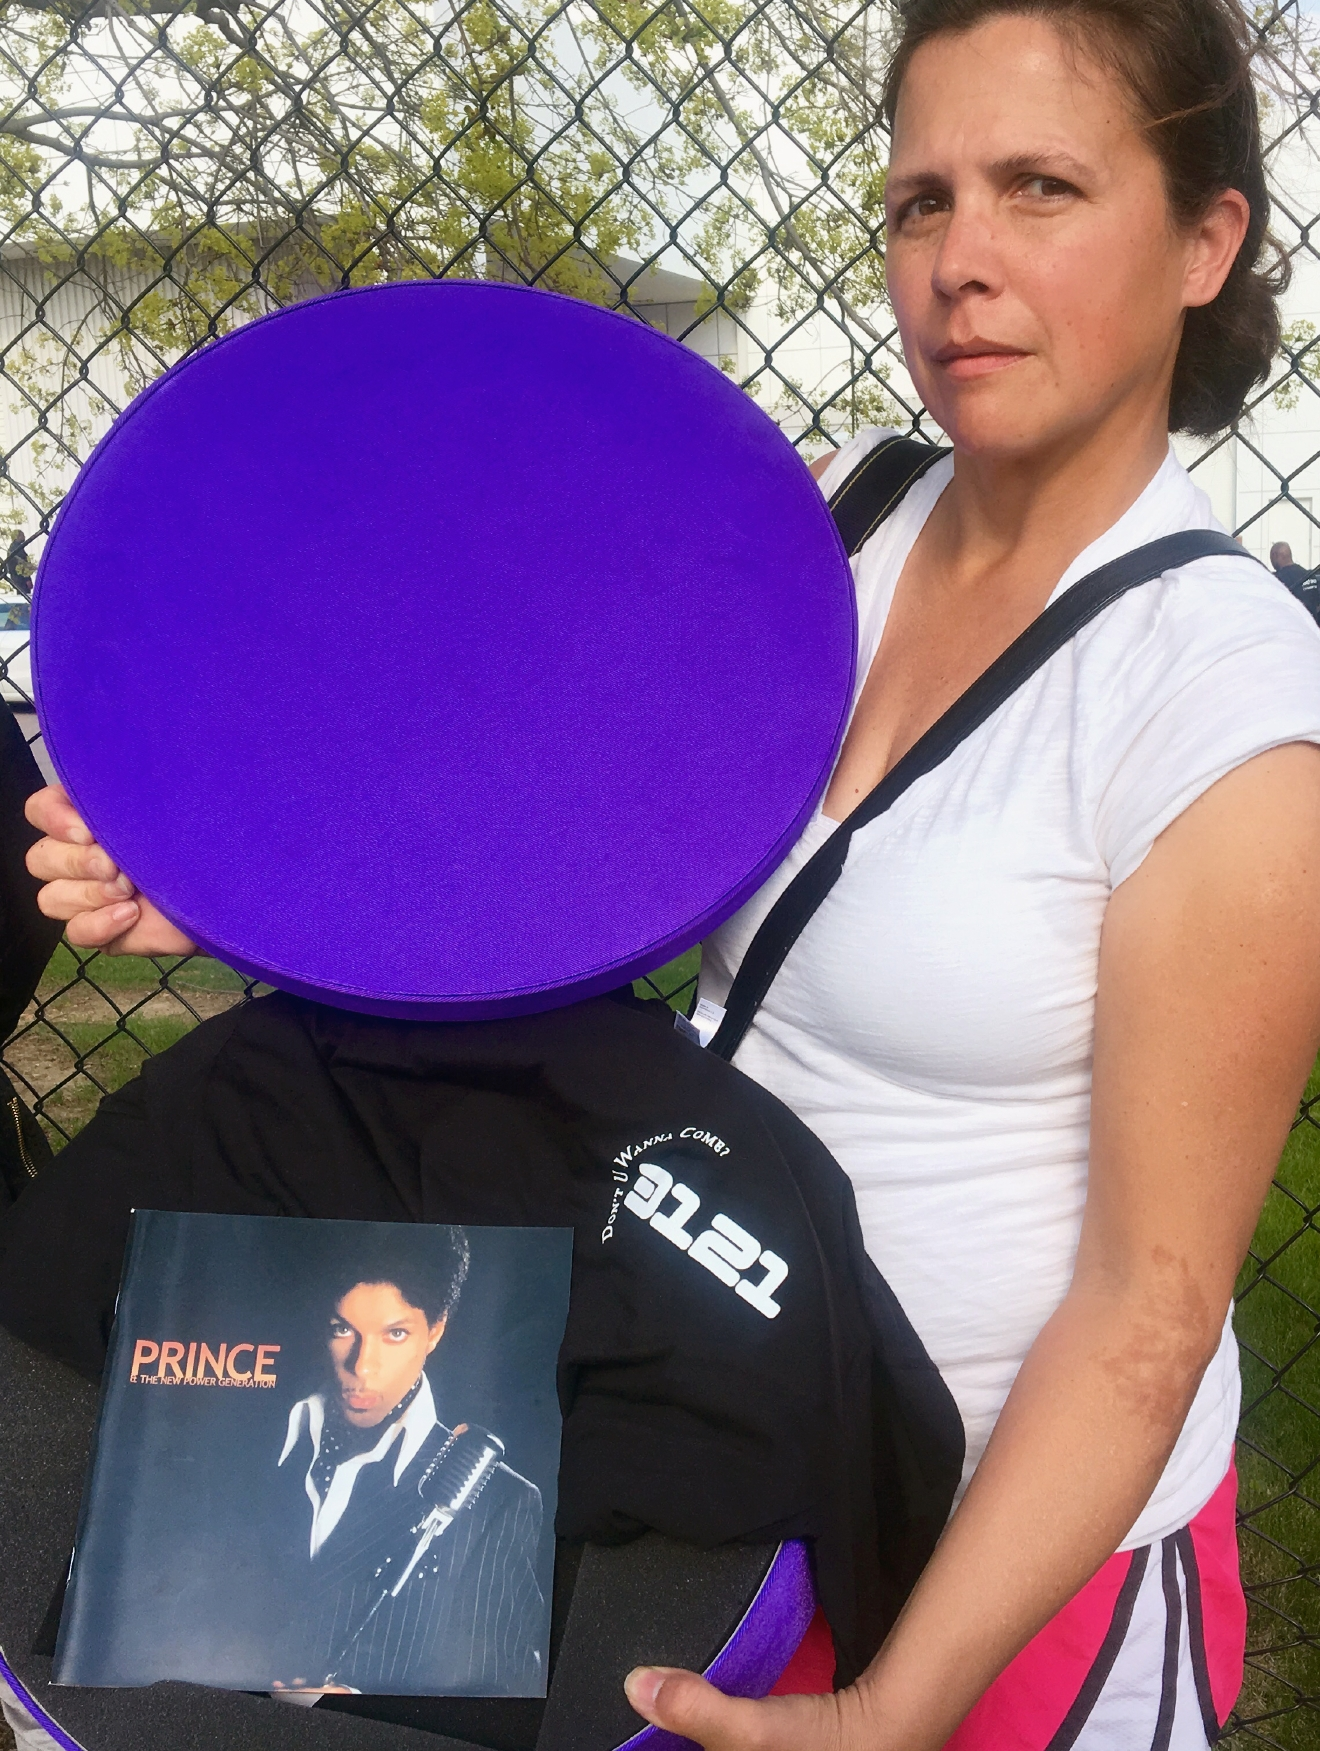 "Colleen Hedtcke, of Hudson, Wis., poses for a photo outside Prince's Paisley Park Studios with a purple hatbox she received containing a Prince booklet and a black T-shirt with ""3121"" printed on it in white- the numbers referring to a Prince album title, in Chanhassen, Minn., Saturday, April 23, 2016. The music superstar was pronounced dead at his Paisley Park estate near Minneapolis on Thursday. He was 57. Round purple boxes were handed out to some fans that were gathered outside the estate. (AP Photo/Jeff Baenen)"